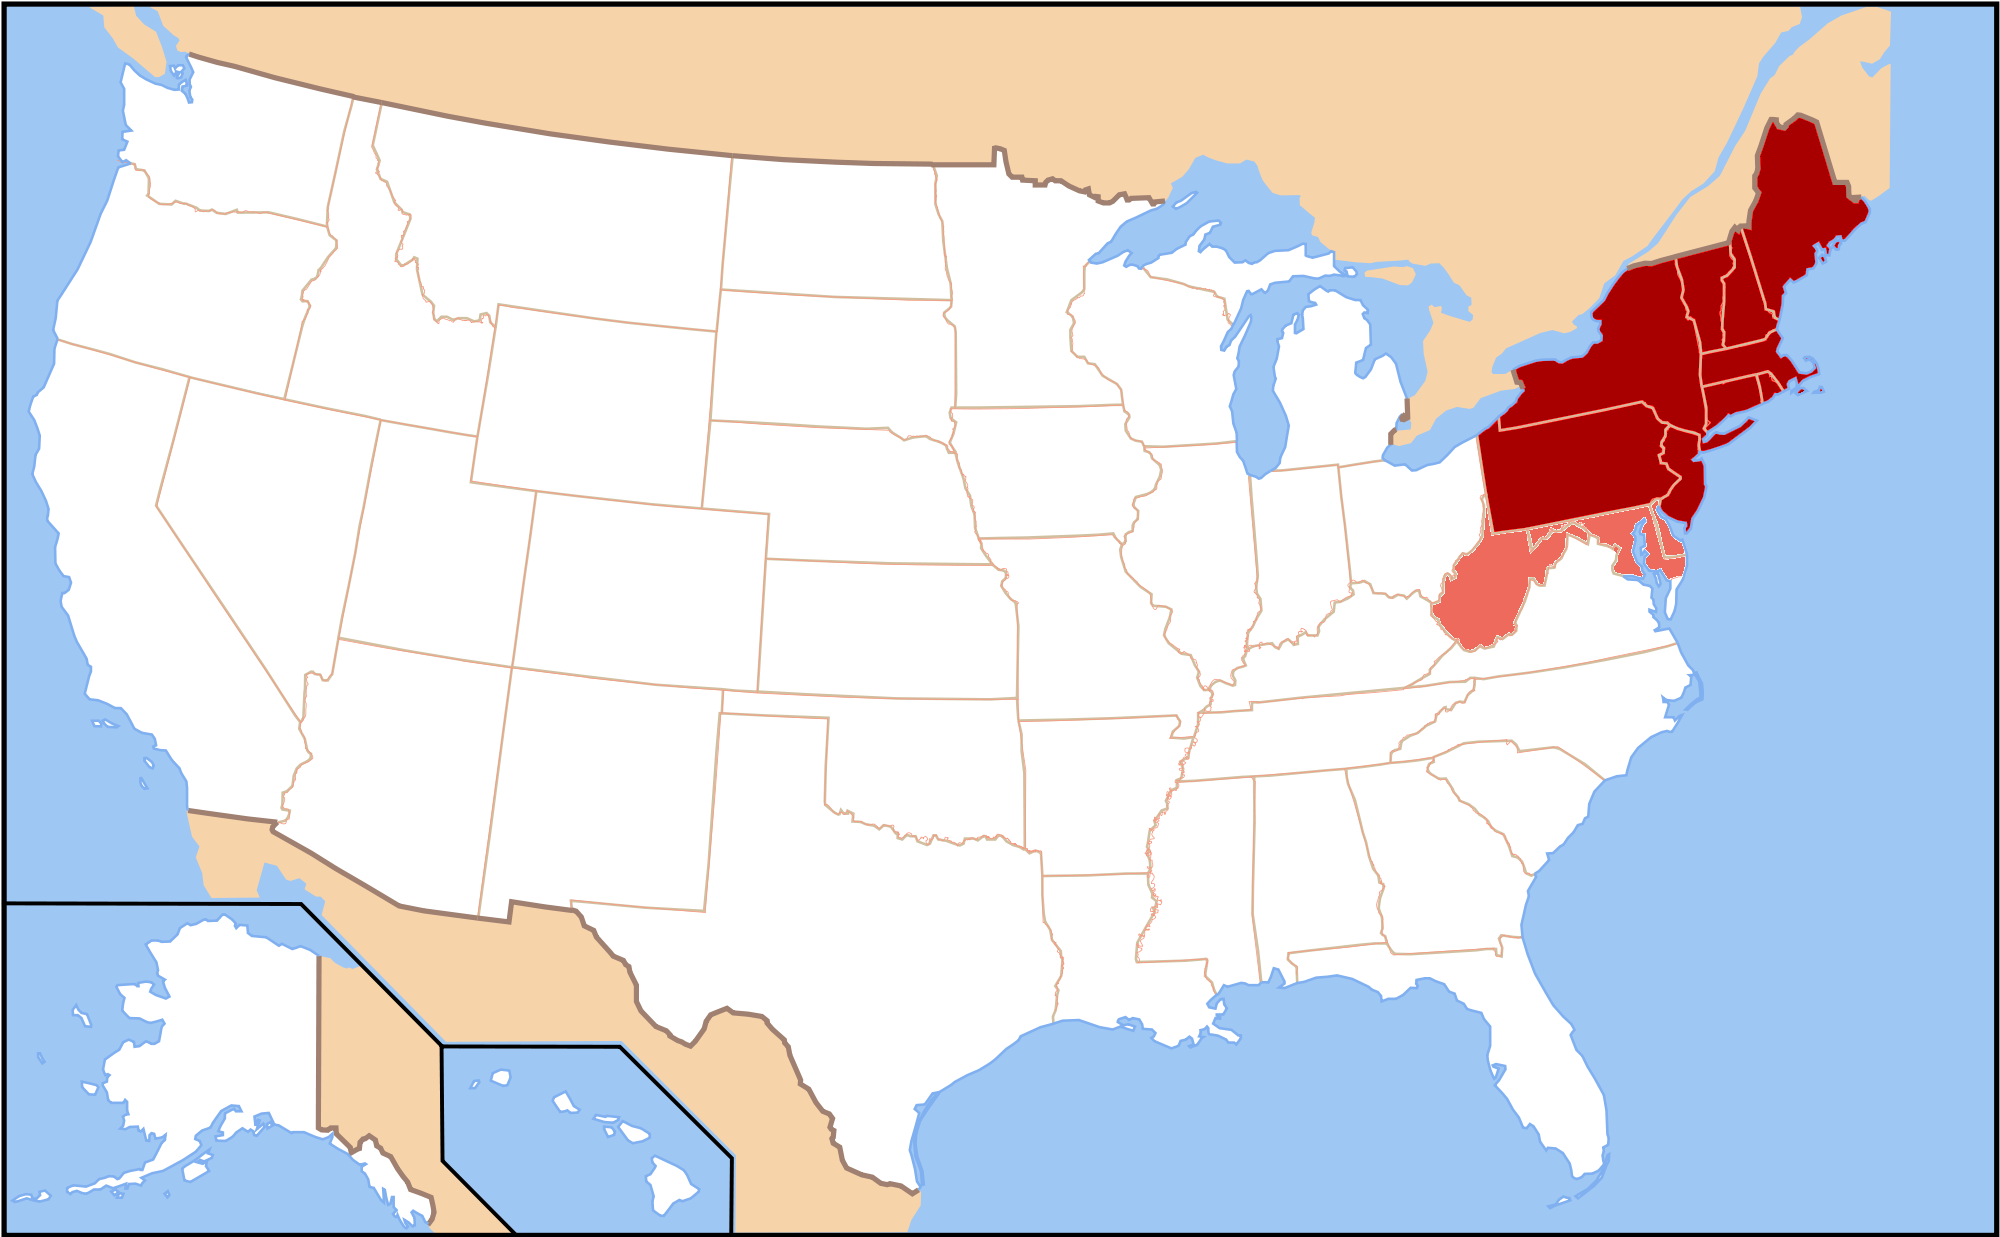 FileMap Of The Northeastern United Statespng Wikimedia Commons - Northeastern usa map